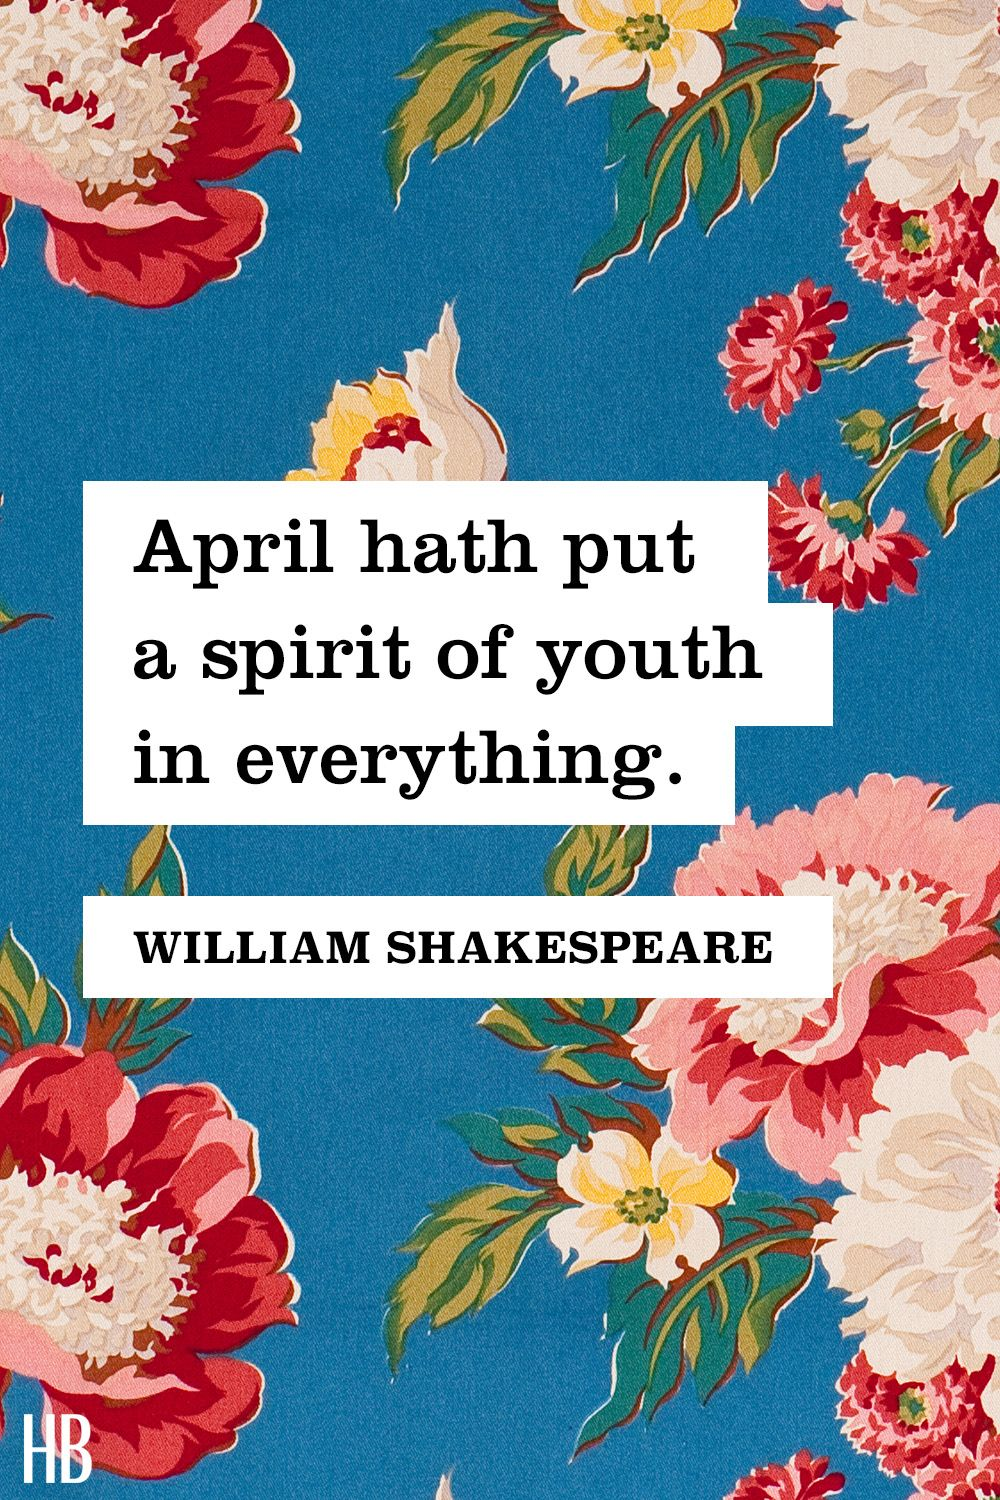 15 Best Easter Quotes Cute And Inspiring Sayings About Spring